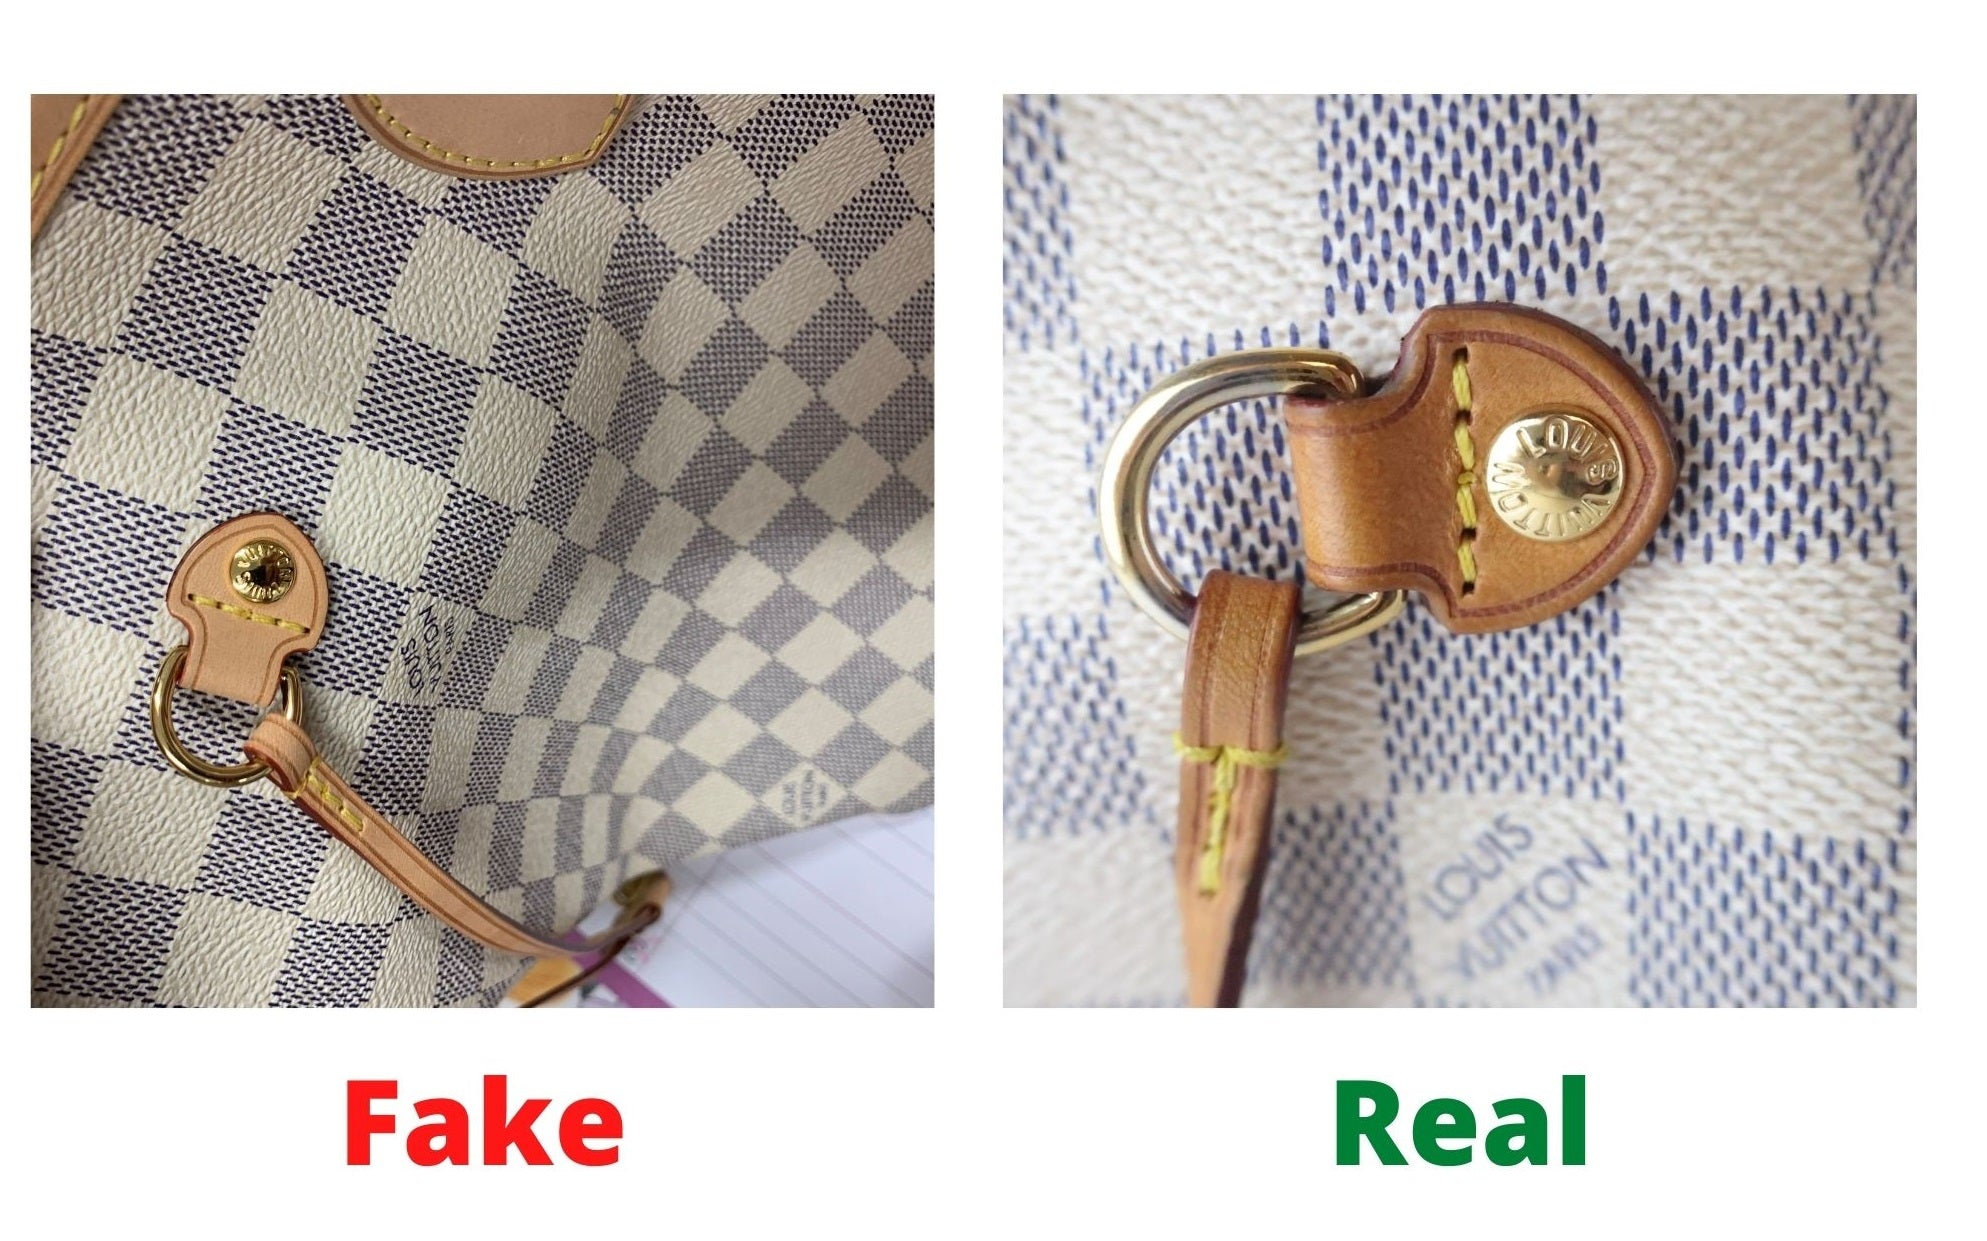 Fake Louis Vuitton Neverfull vs Real: Important Details You Should Definitely Pay Attention To (With Photo Examples) Neverfull Damier Azur real vs fake pin